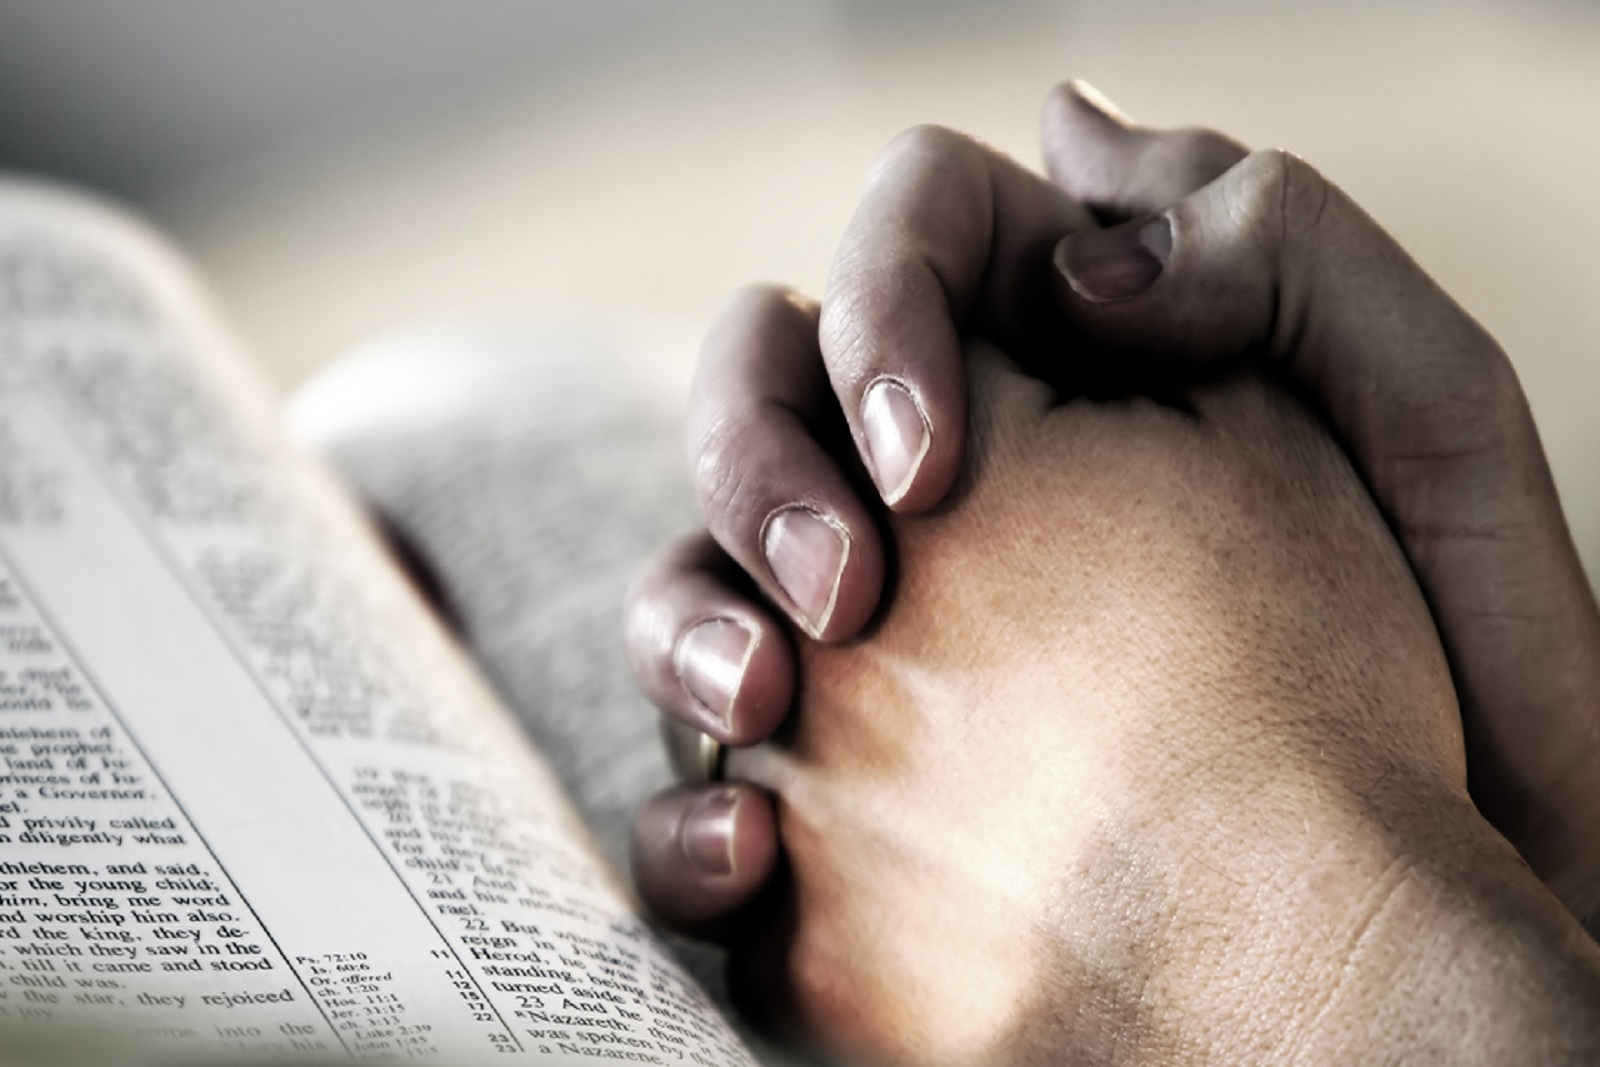 Man's hands folded in prayer over a Holy Bible - represents faith and spirtuality in everyday life.